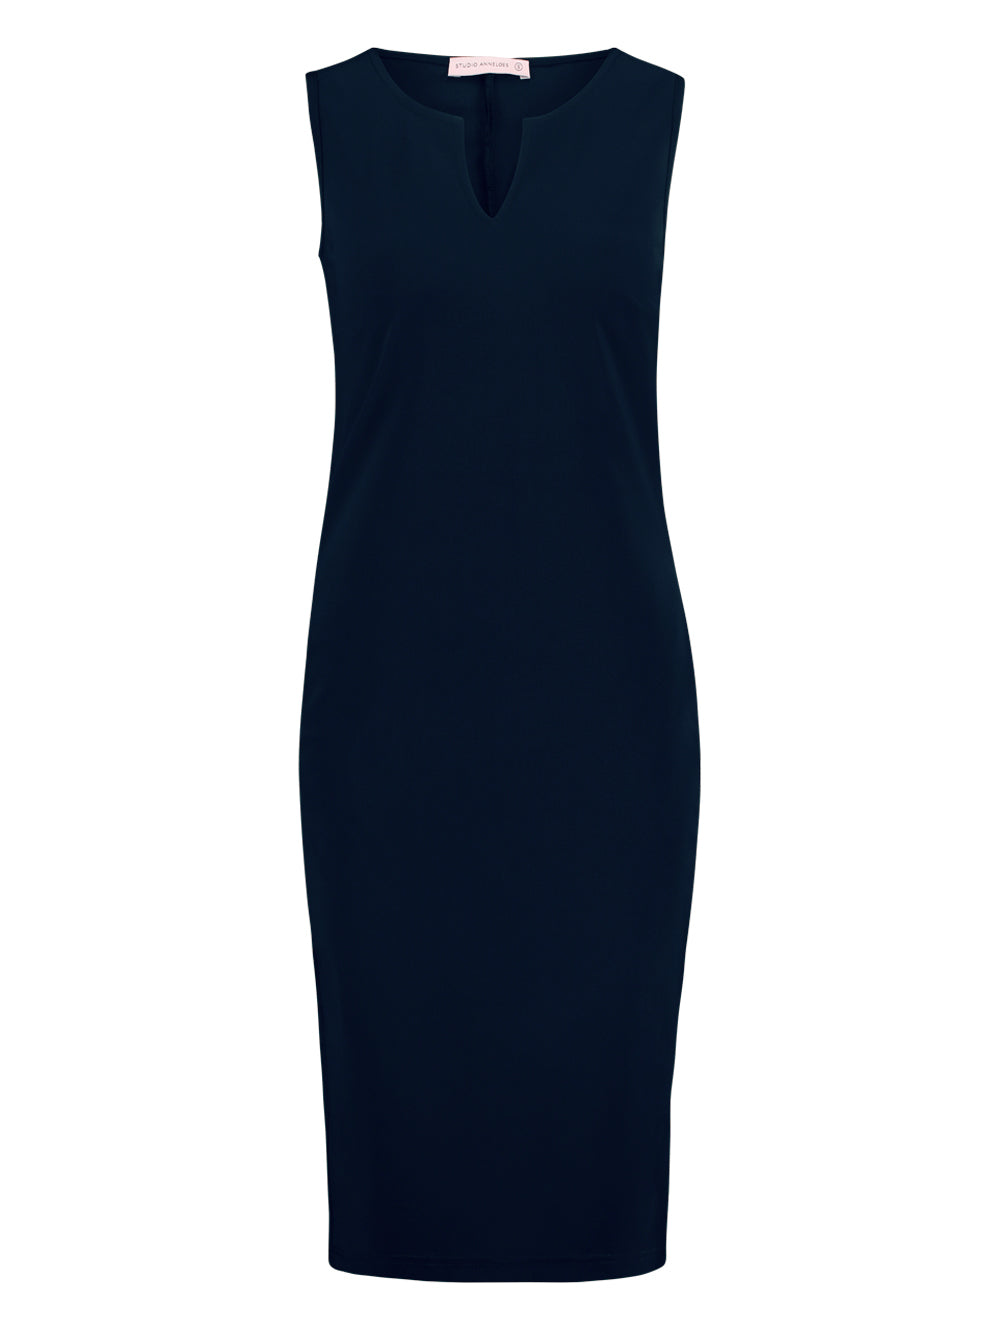 Simplicity SL dress 6900 Dark Blue